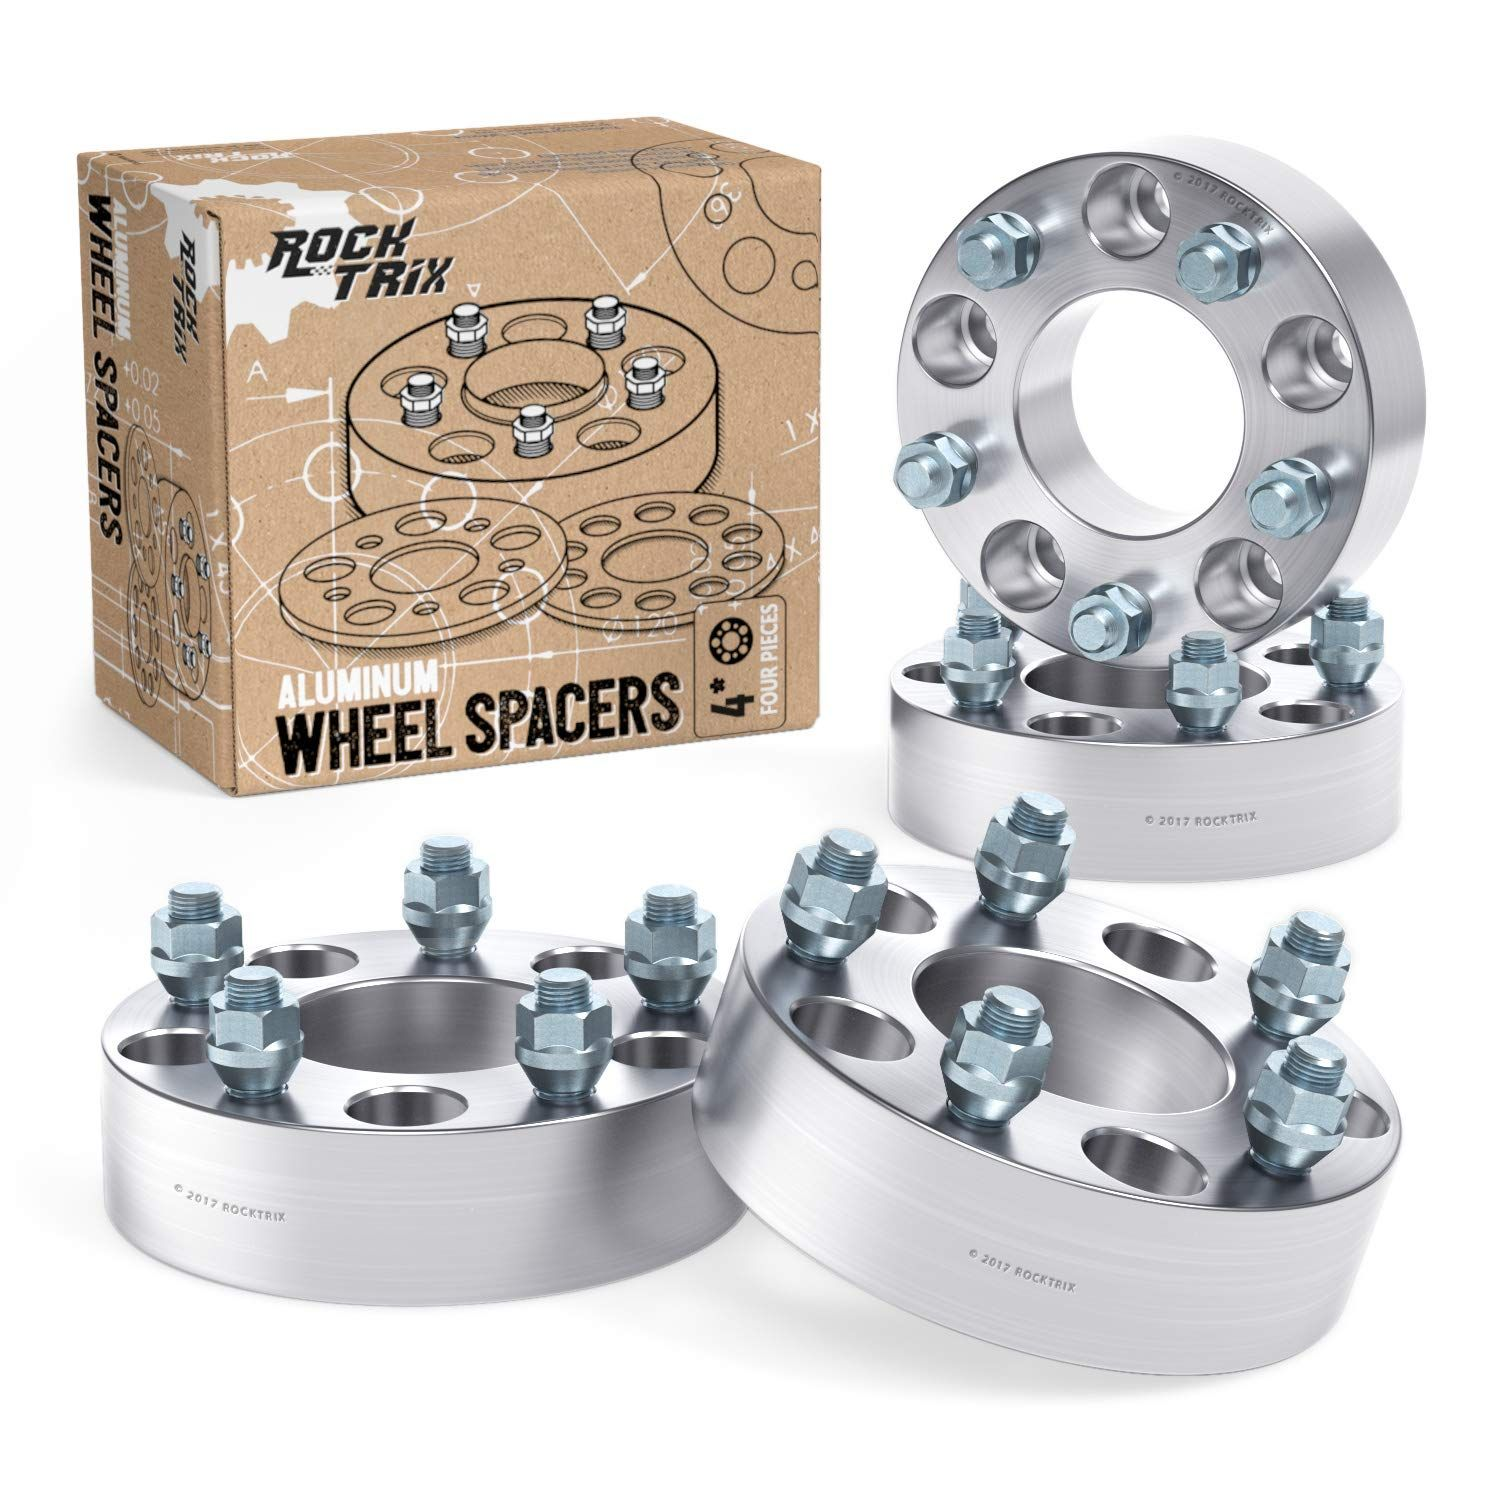 4pc Wheel Spacers 2 Thick 5x5 5 To 5x5 5 Bolt Pattern With 1 2 Studs For Dodge Ram 1500 Ford F100 F150 E100 E Bolt Pattern Dodge Ram 1500 Dodge Dakota